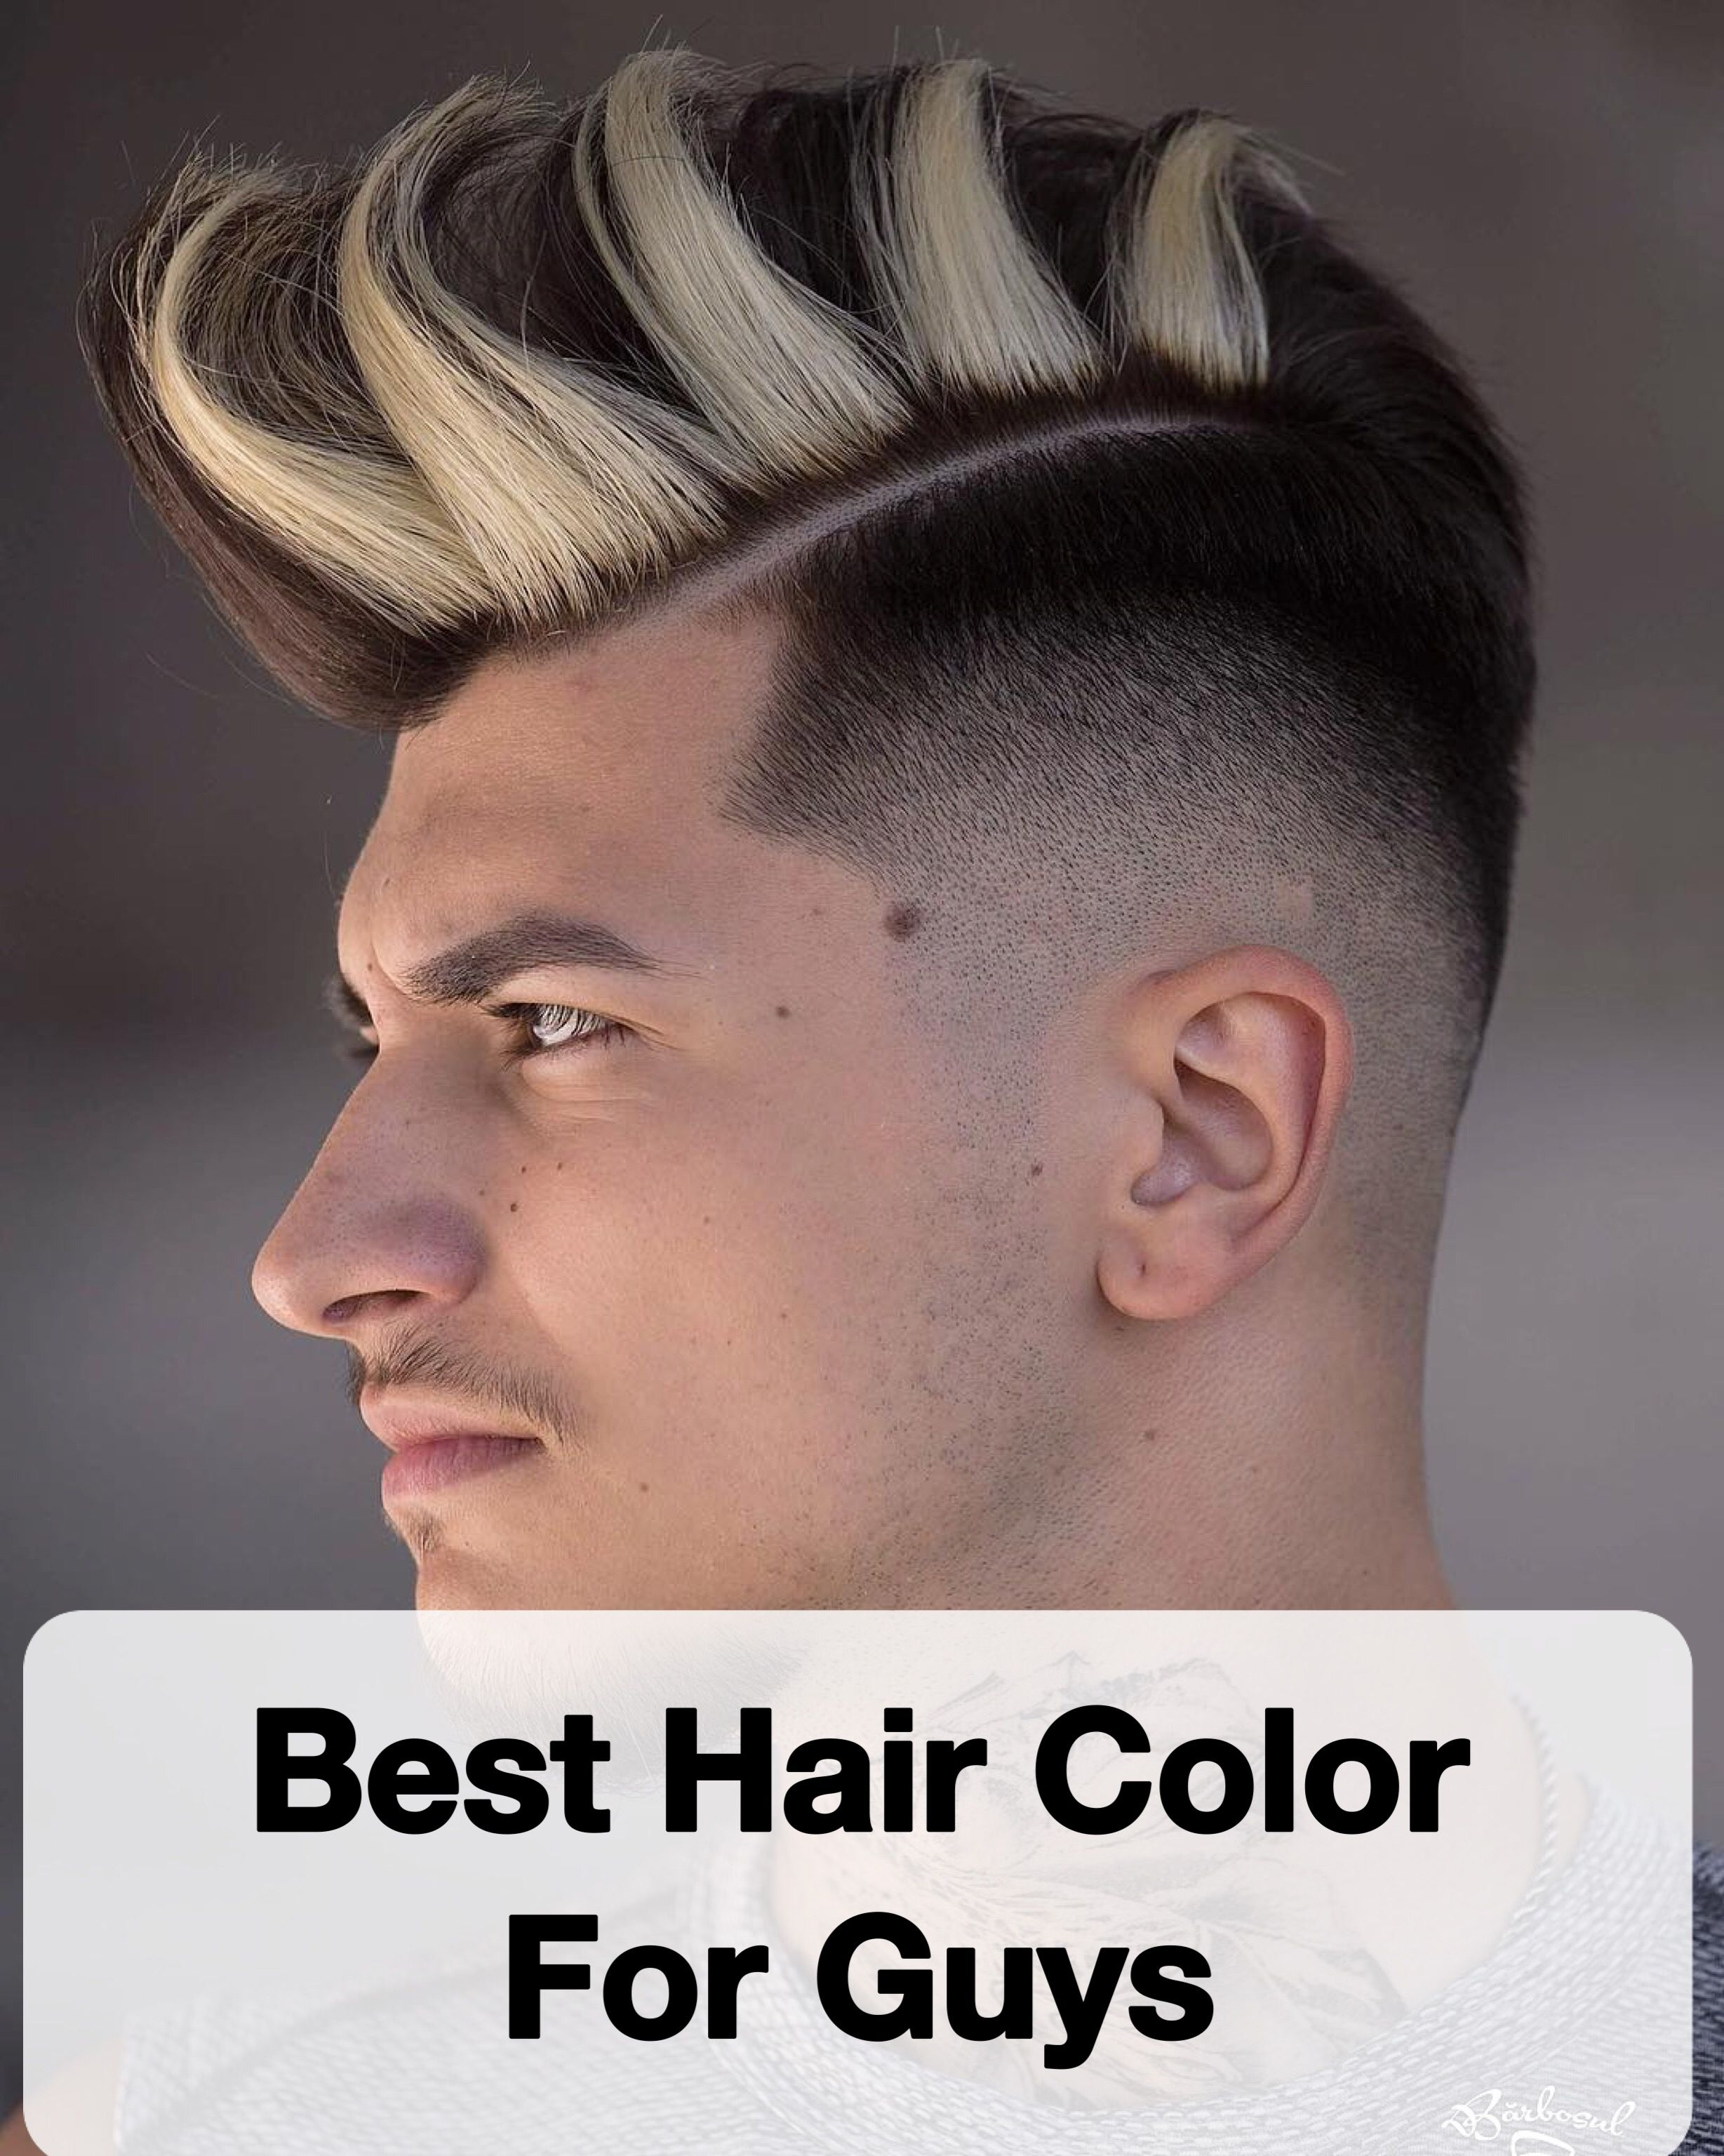 20 Best Hair Color For Guys In 2018 Men S Hairstyles Cool Hair Color Boys Colored Hair Men Blonde Highlights